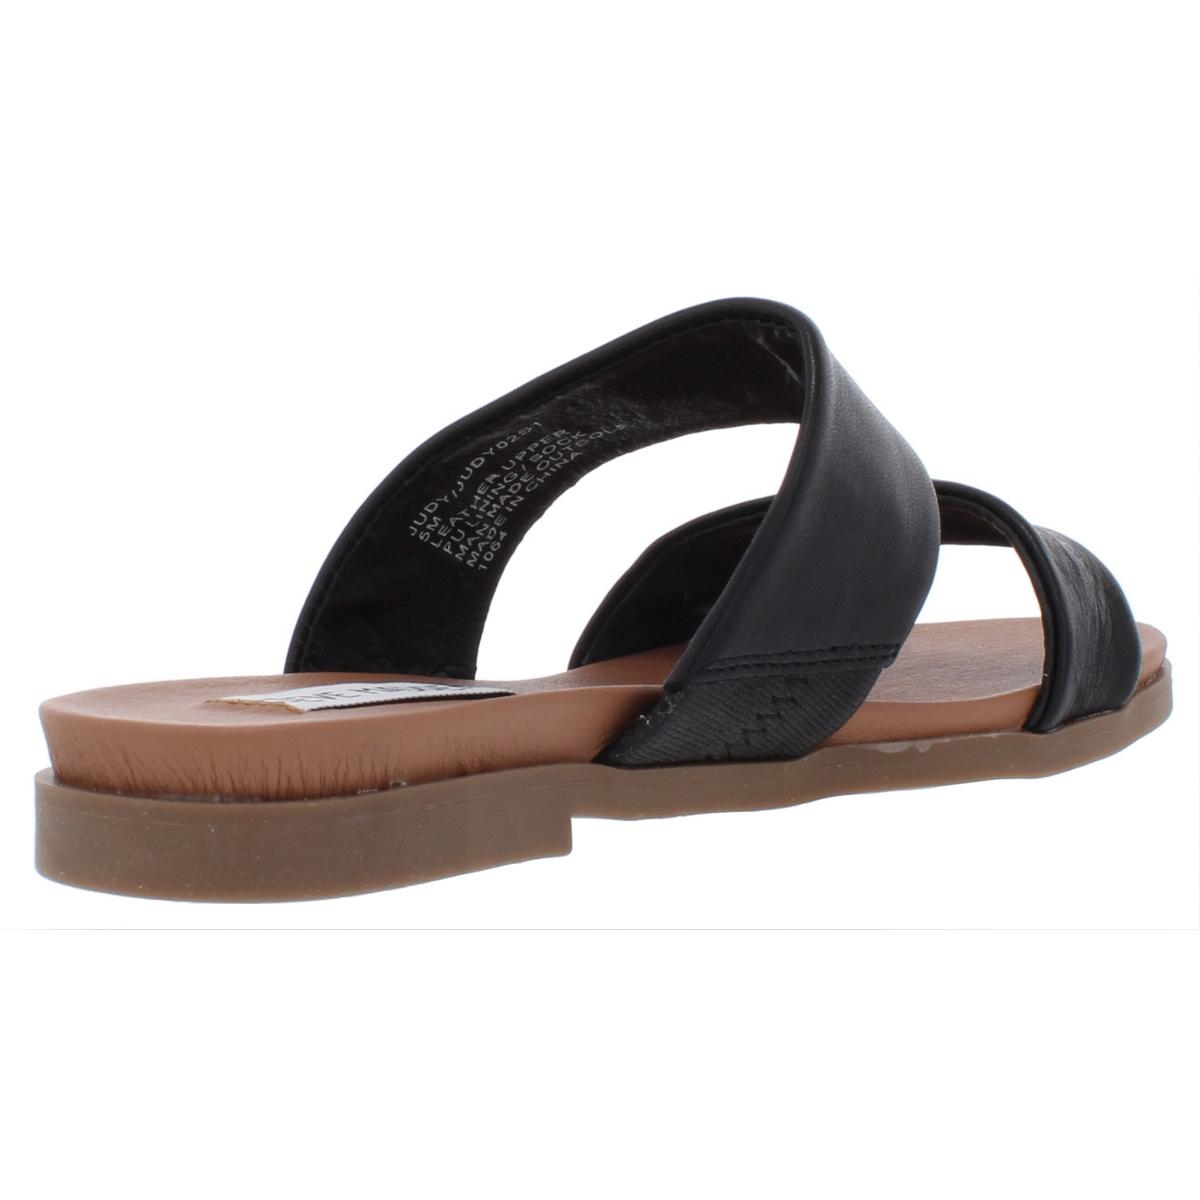 Steve-Madden-Womens-Judy-Leather-Sandals-Flats-Shoes-BHFO-7653 thumbnail 4